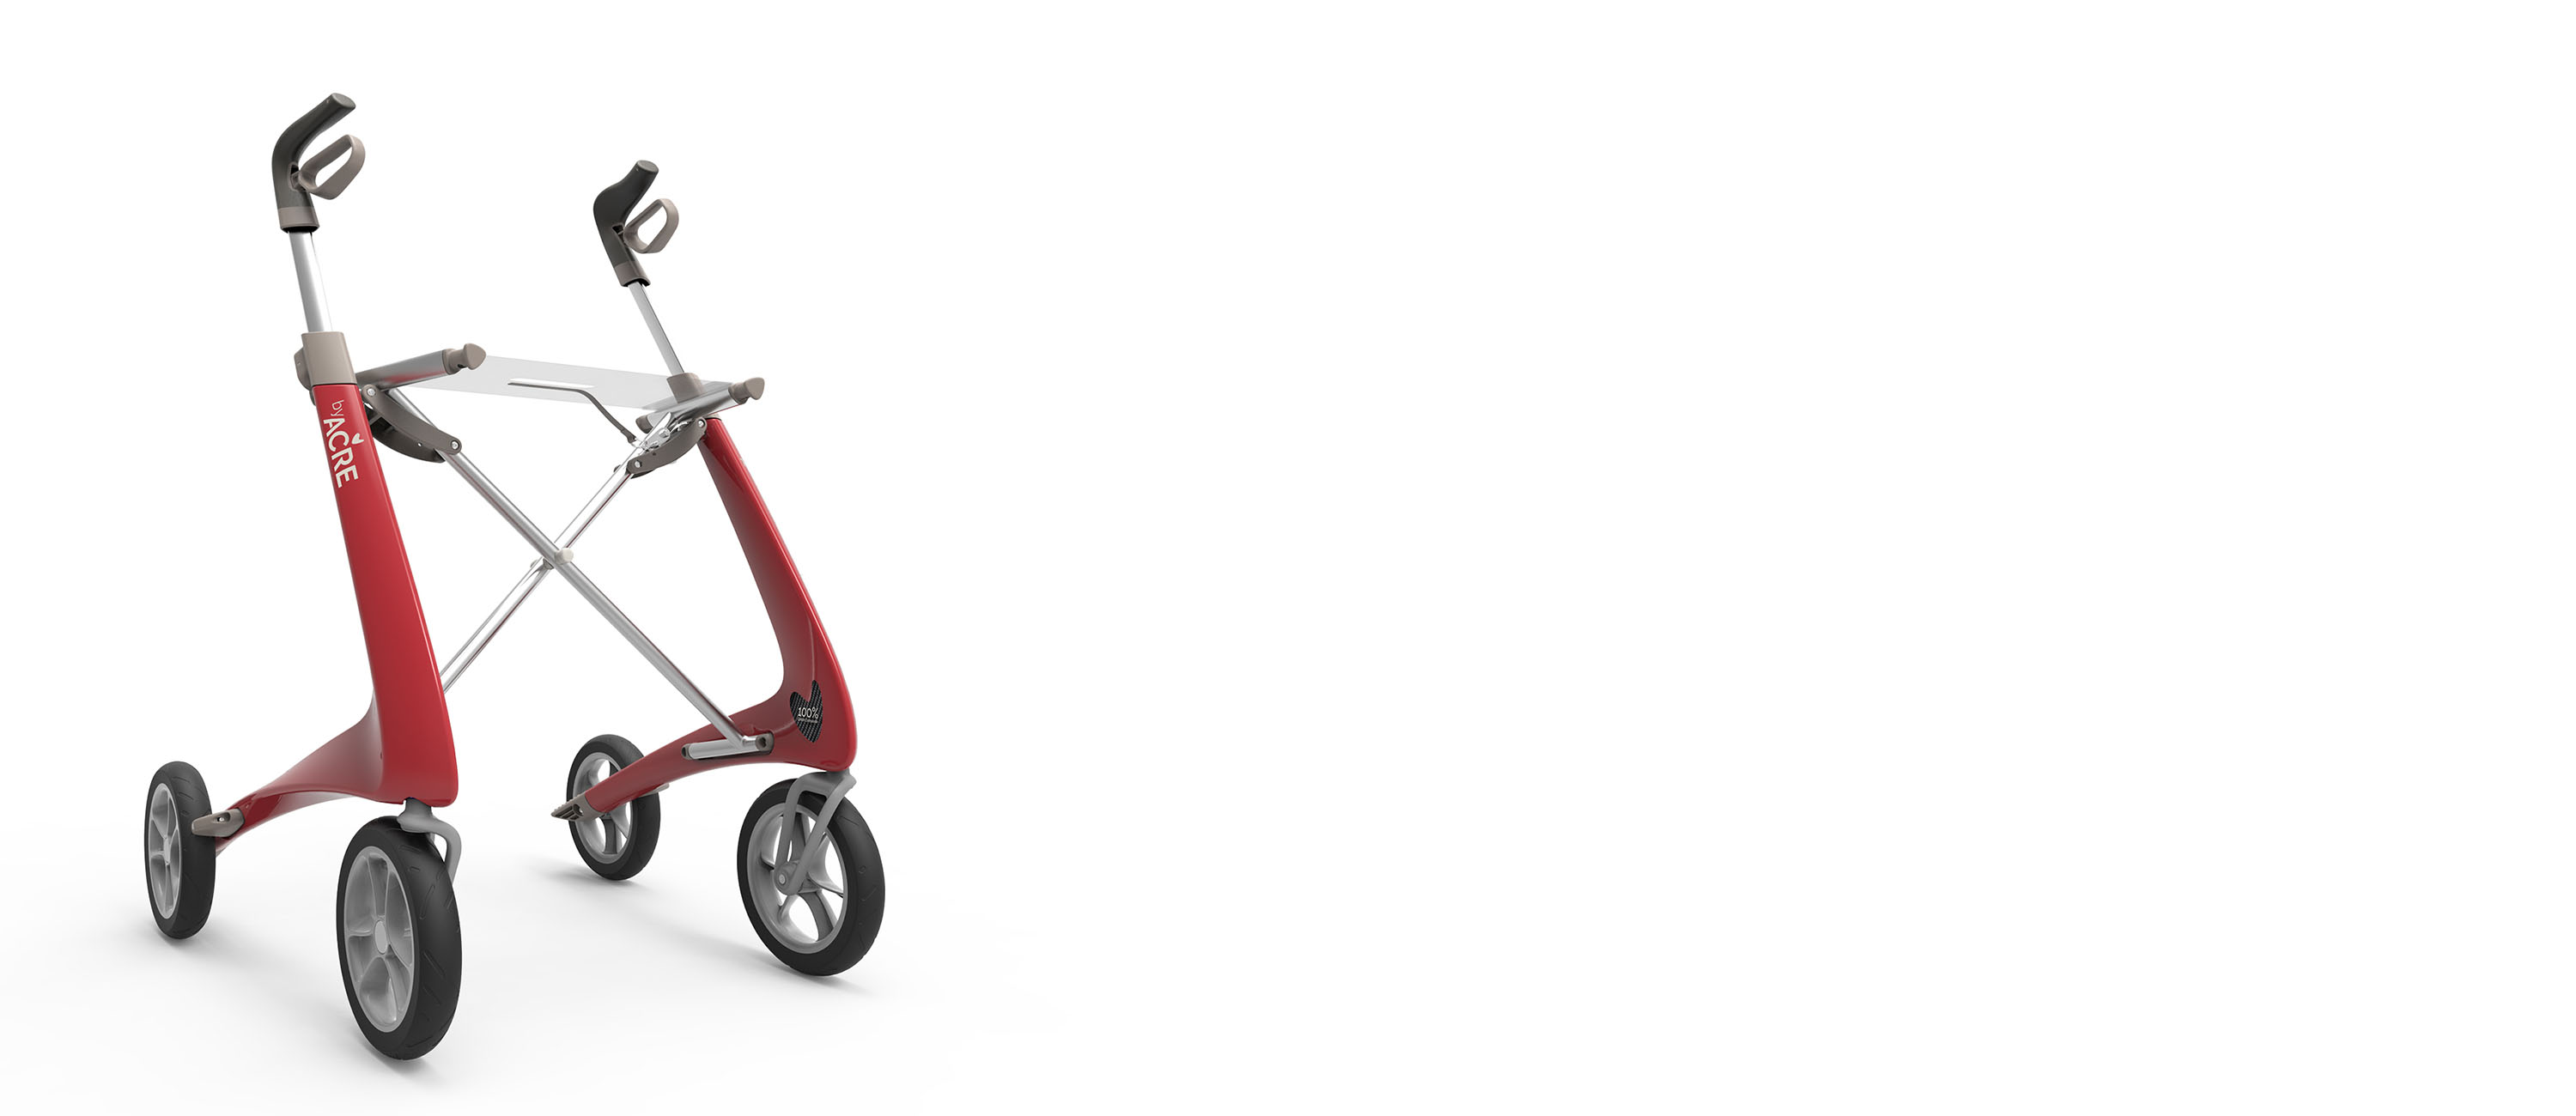 Red Carbon Ultralight Rollator byACRE - Seen in perspective